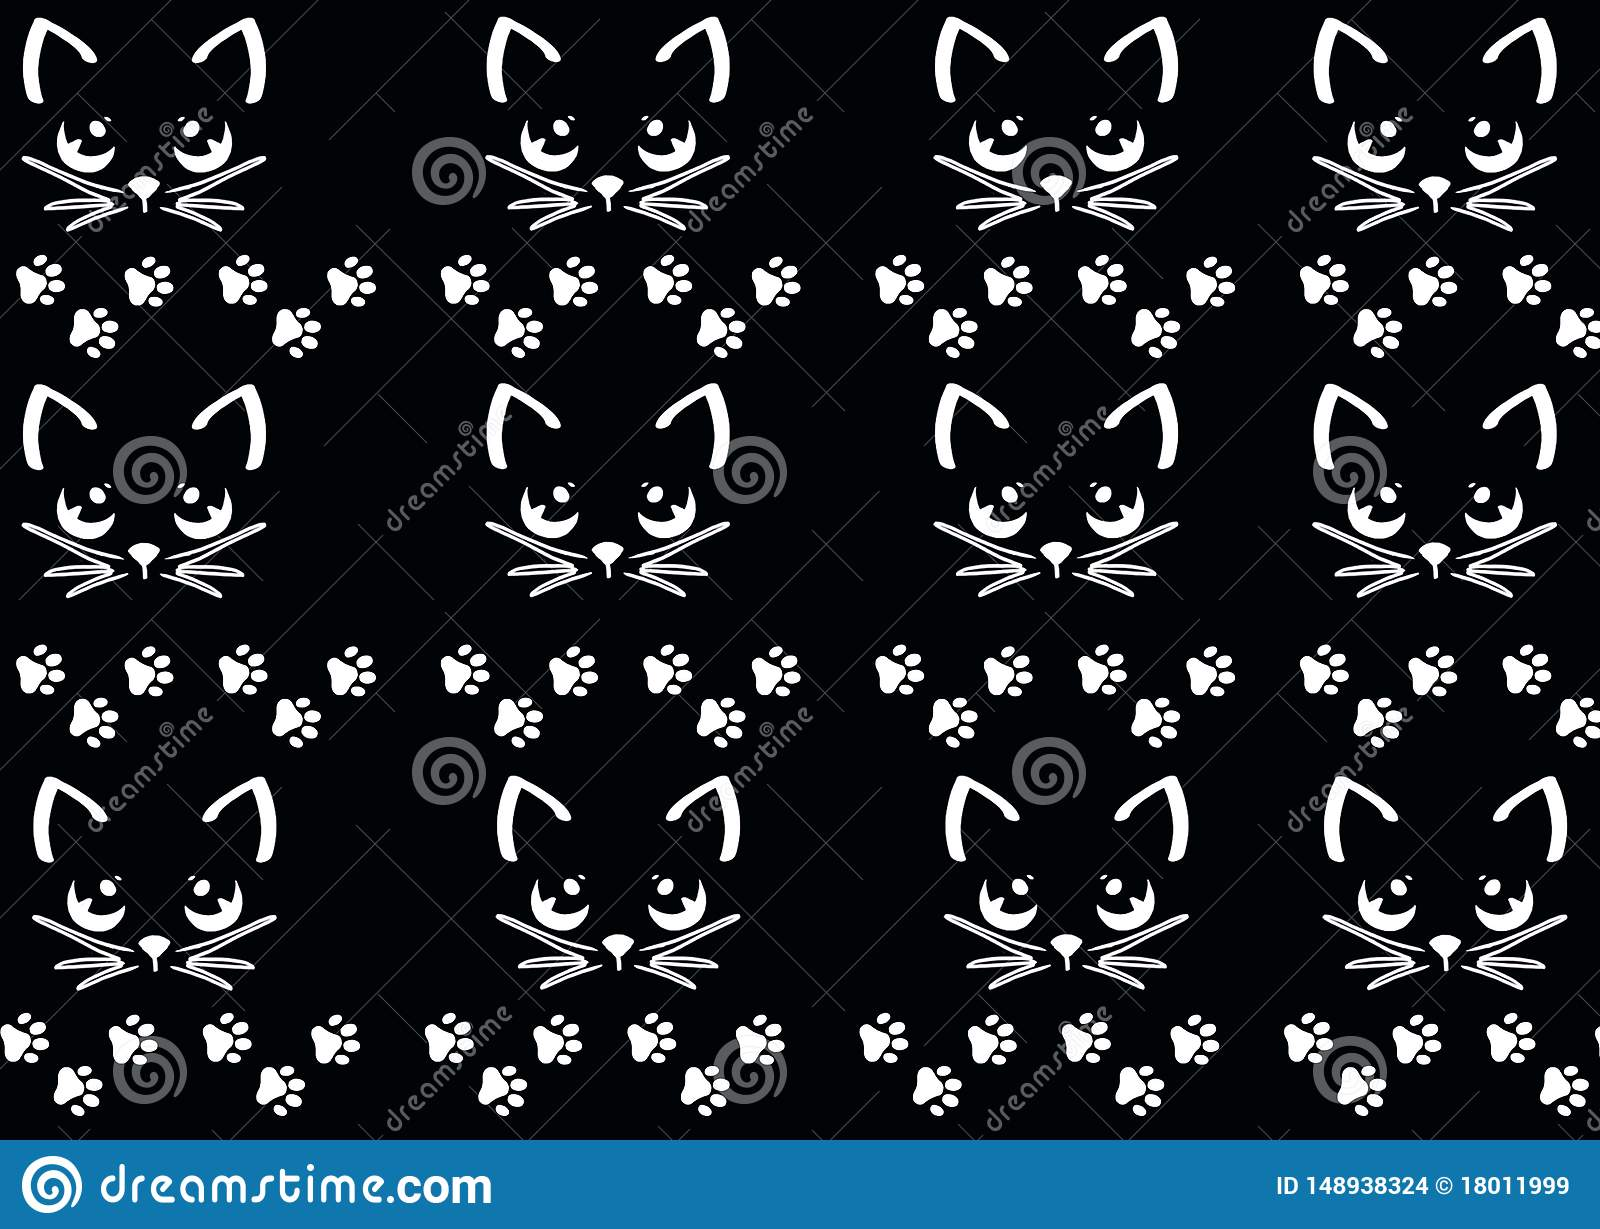 Pattern Cute Cat Paws Wallpaper Stock Illustration Illustration Of Flowers Decorate 148938324